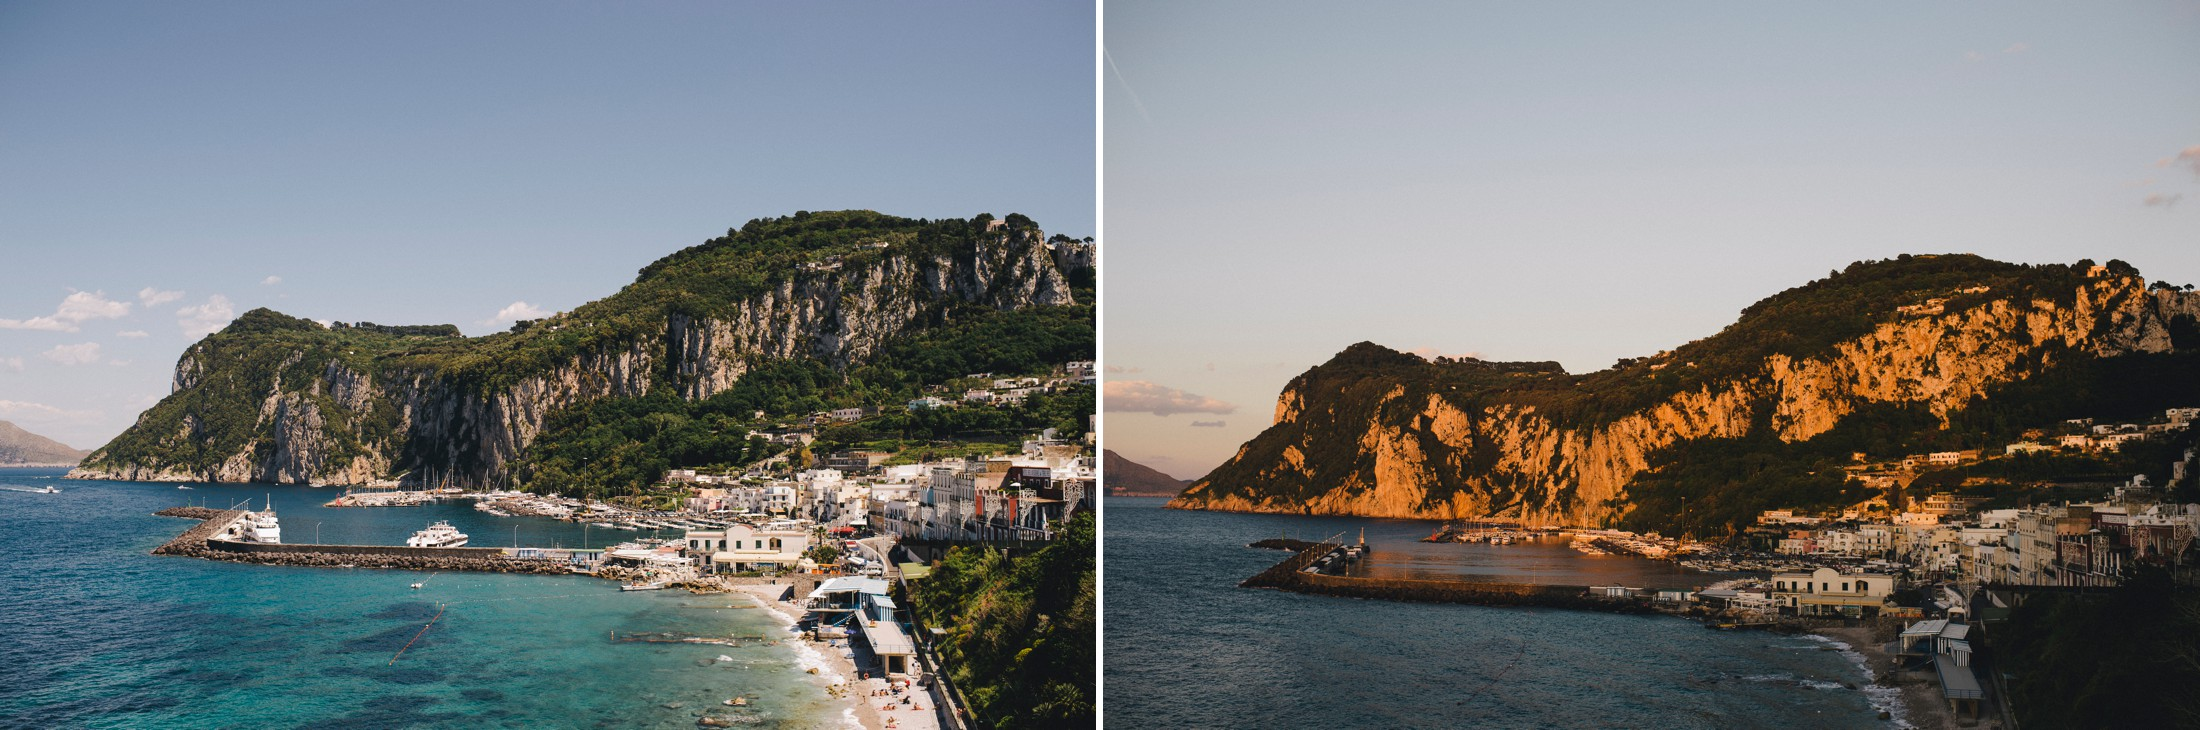 collage capri coast morning and sunset time